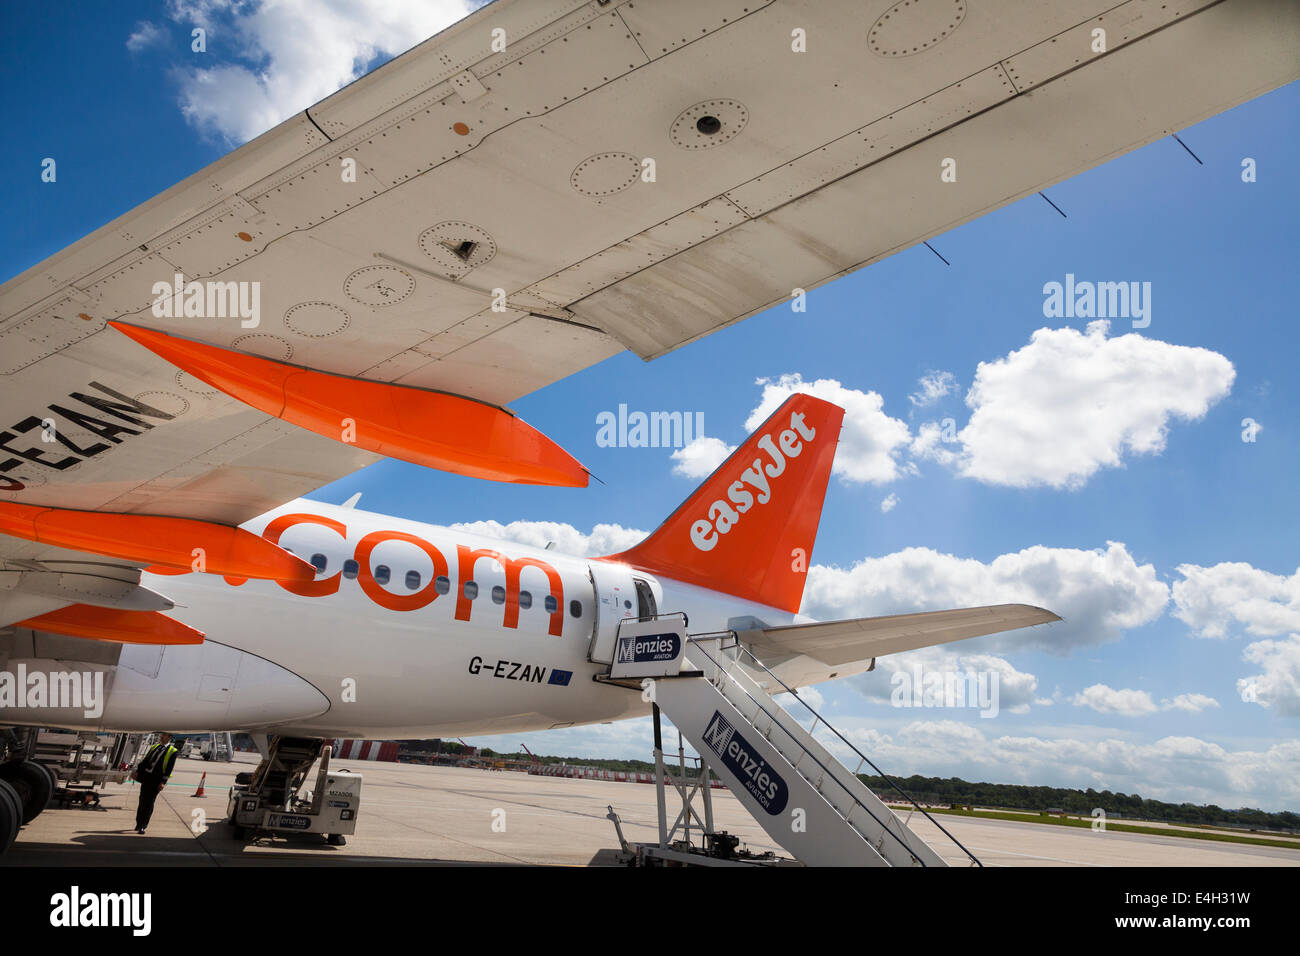 Under the wing of an EasyJet aircraft ready for boarding. - Stock Image